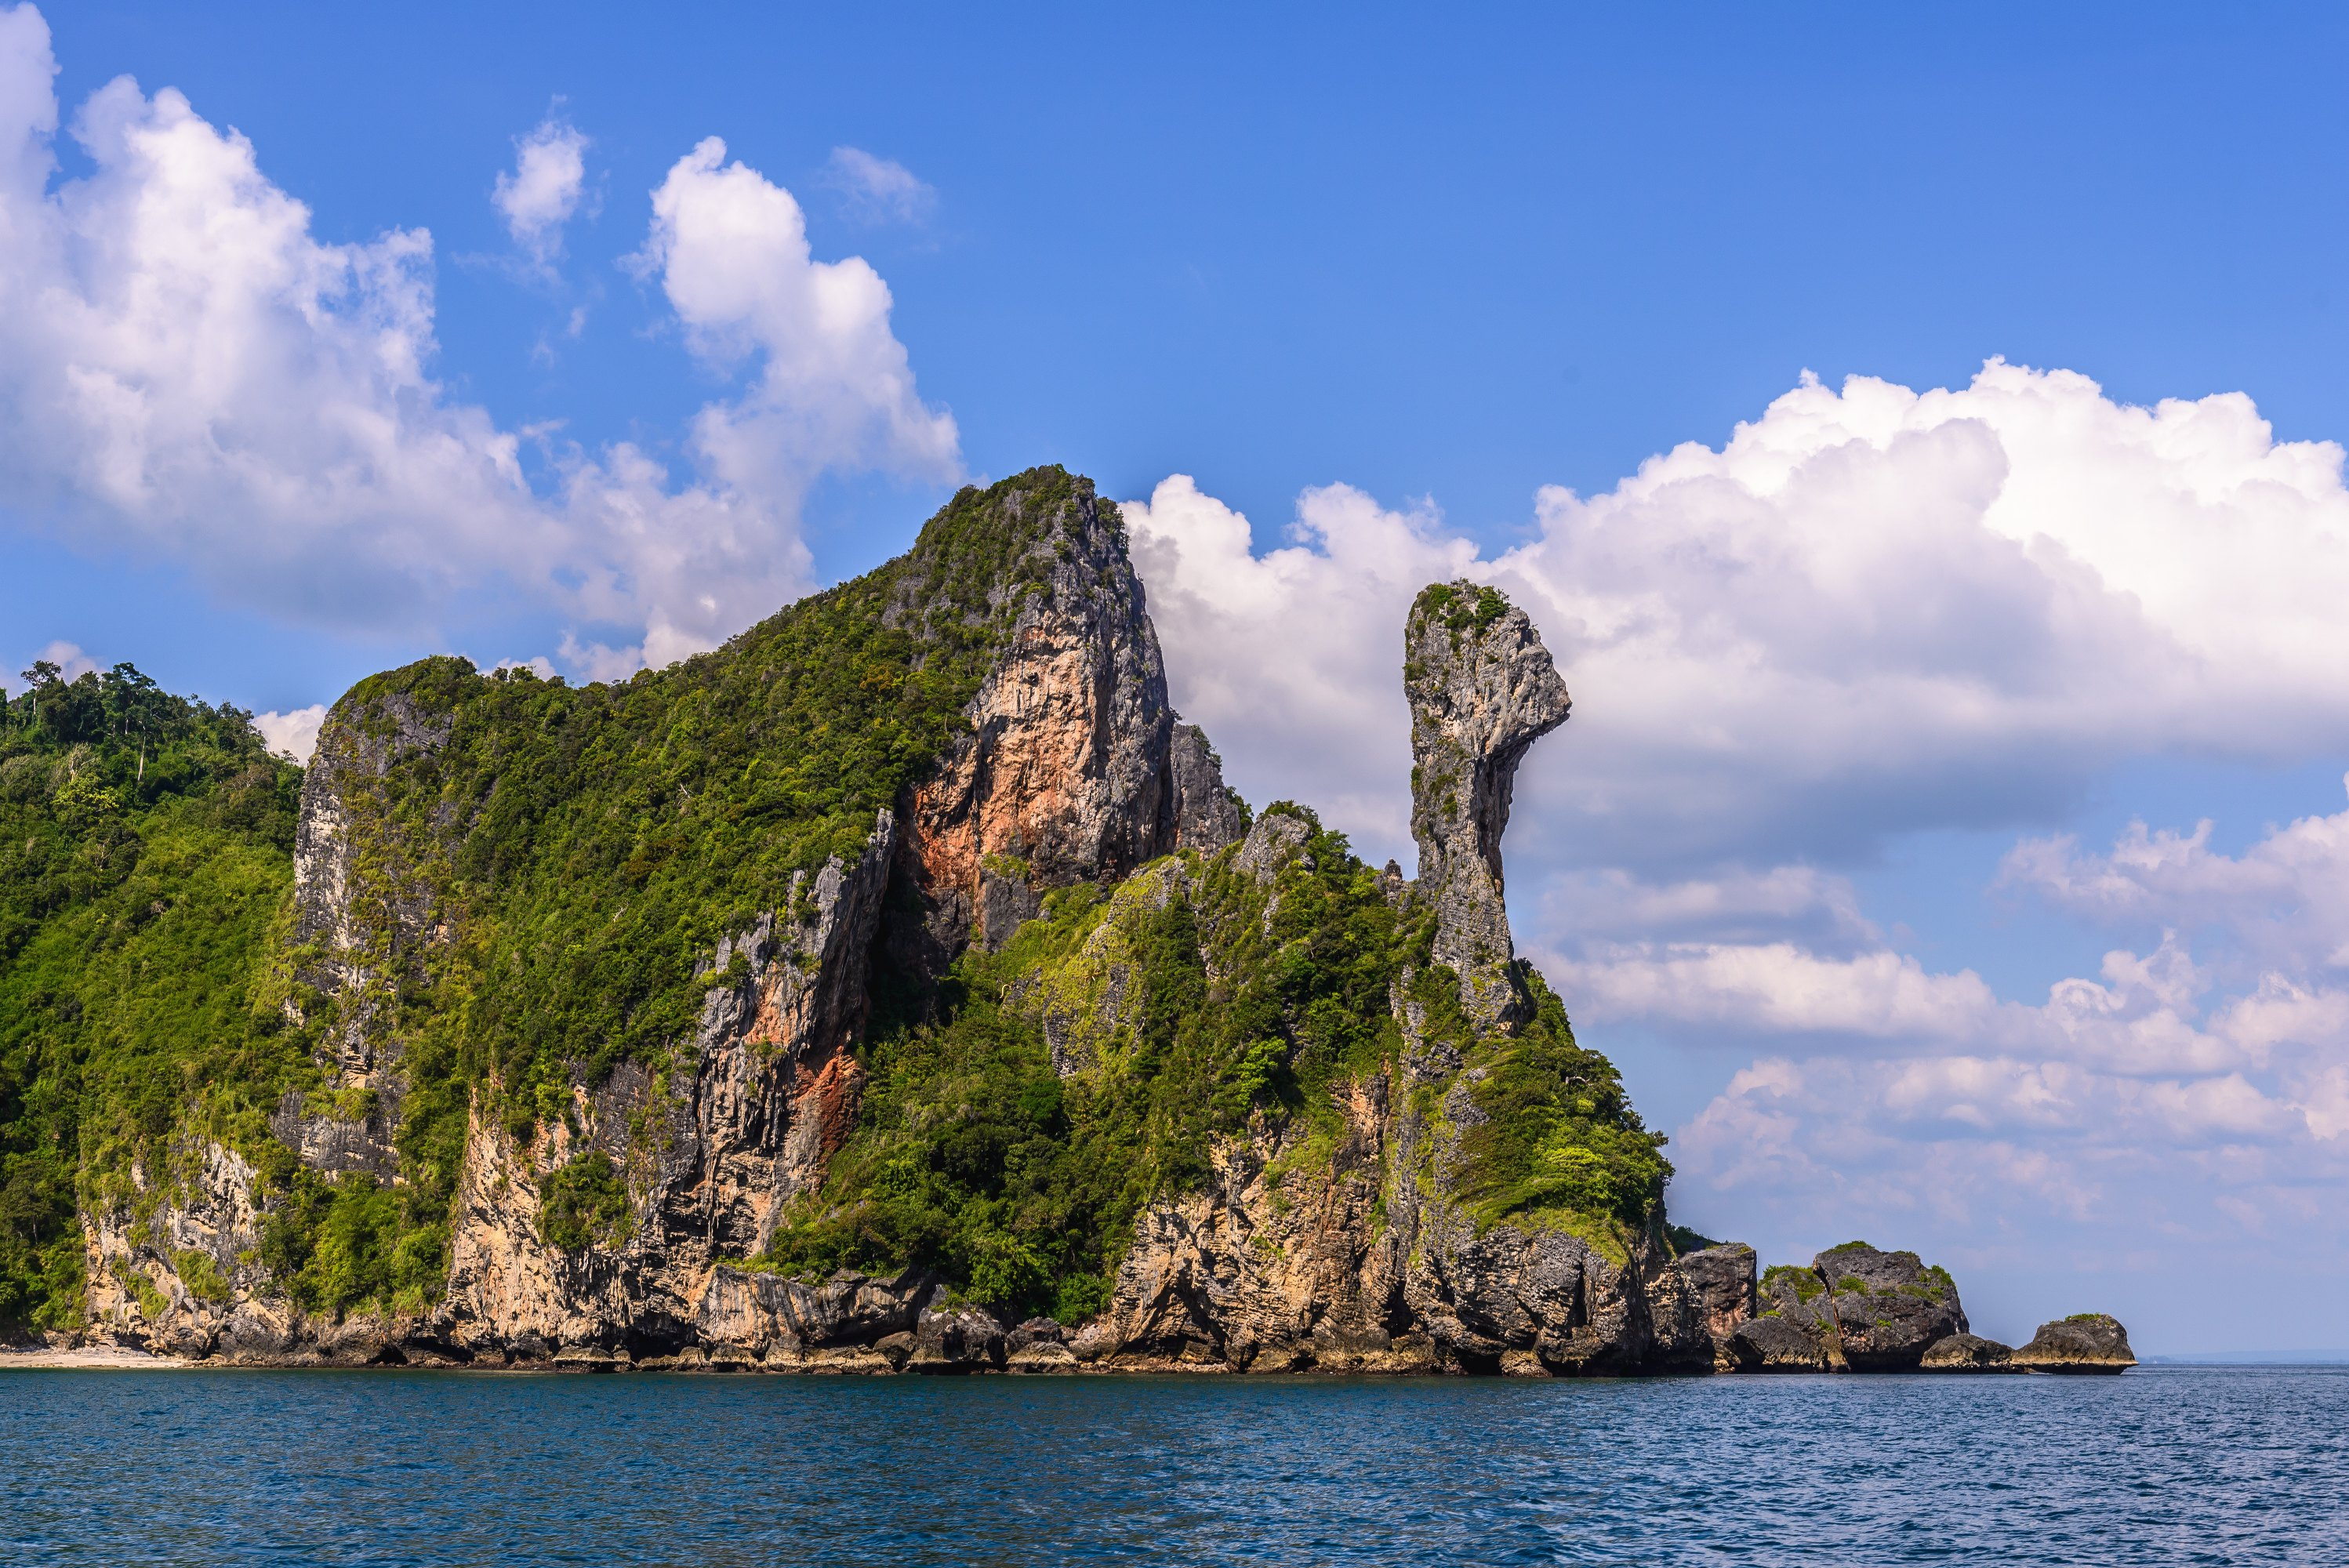 5 Things to Do When Visiting Krabi